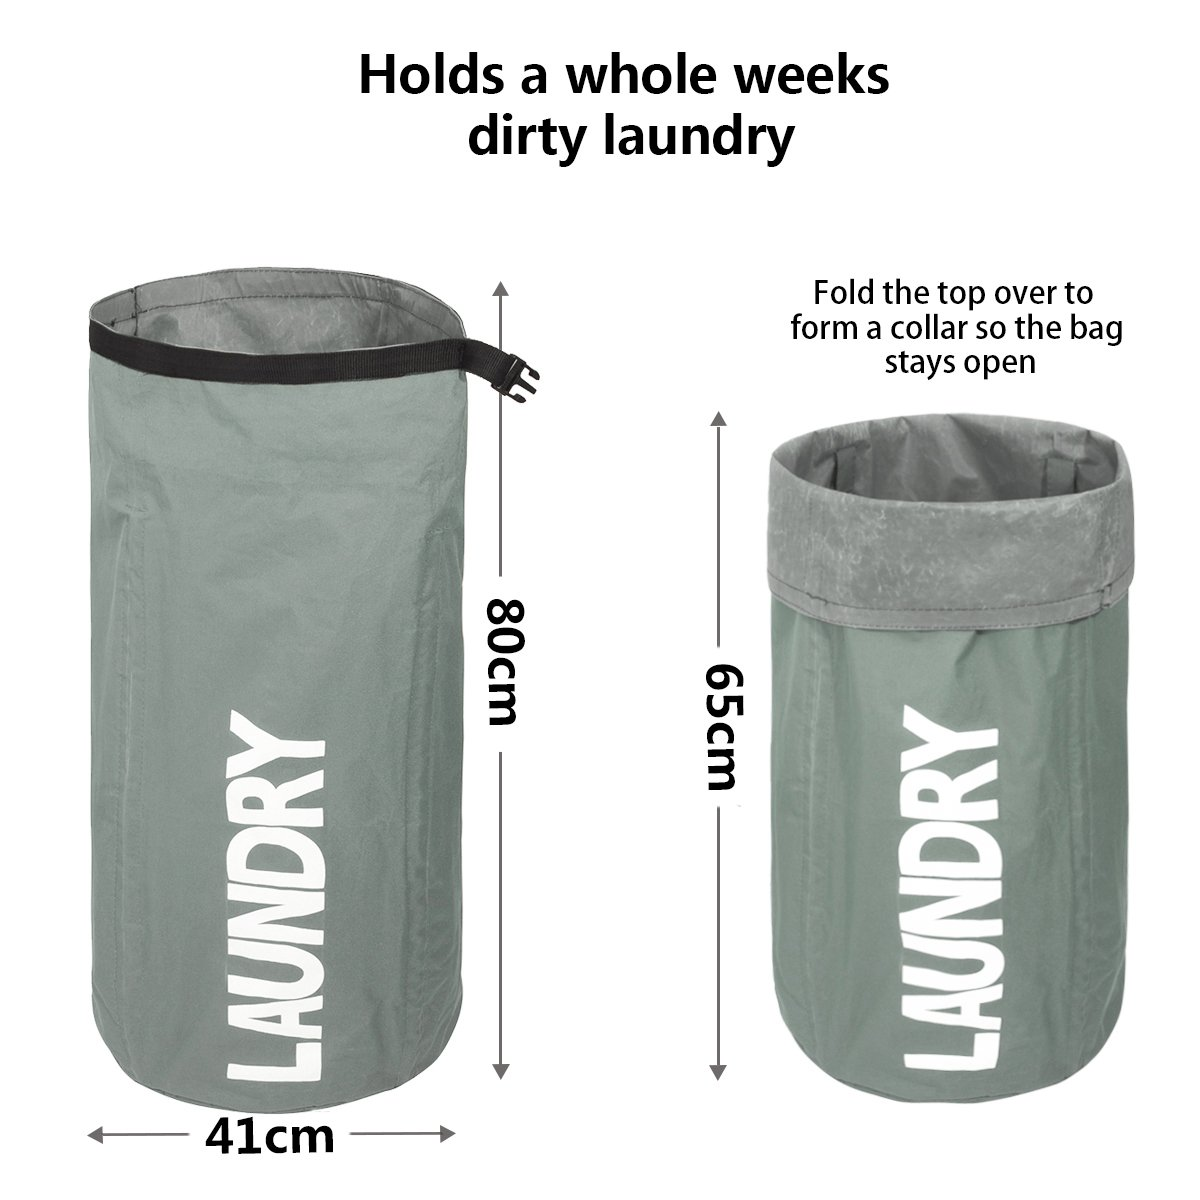 WOWLIVE Extra Large Foldabe Laundry Basket Round Tall Collapsible Laundry Hamper Waterproof Bag with Heavy Duty Laundry Liners Standing Laundry Bin for Home and Bedroom(Gray)